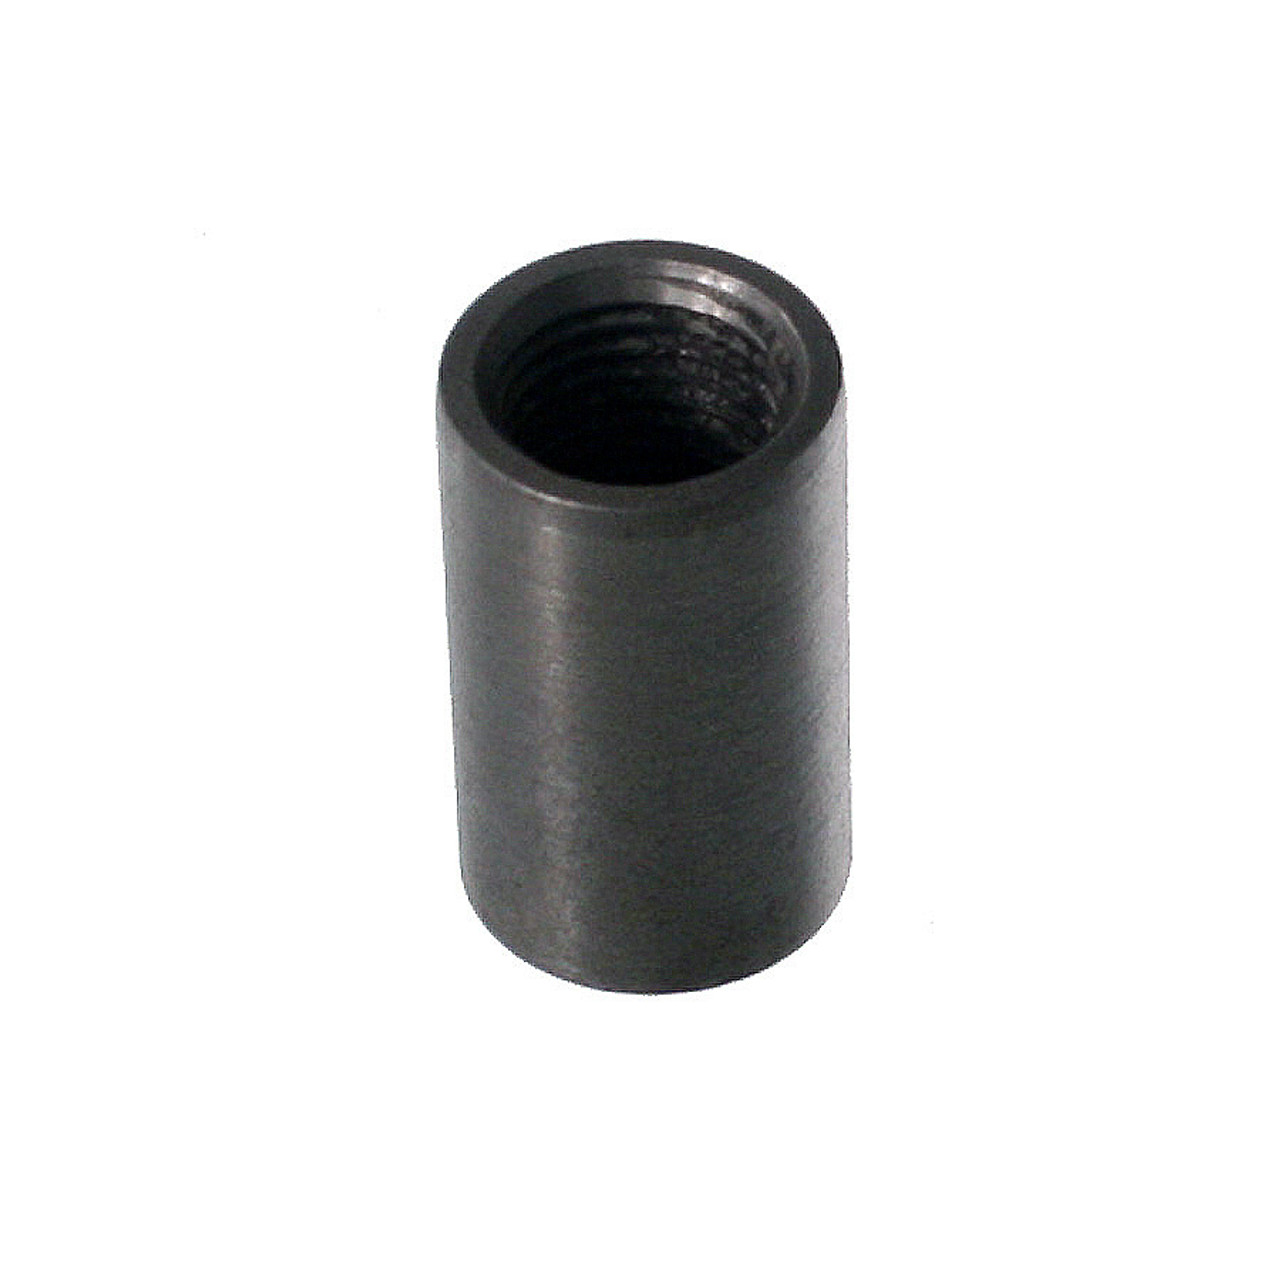 Rare Parts RP17870 Trunnion Pin Bushing